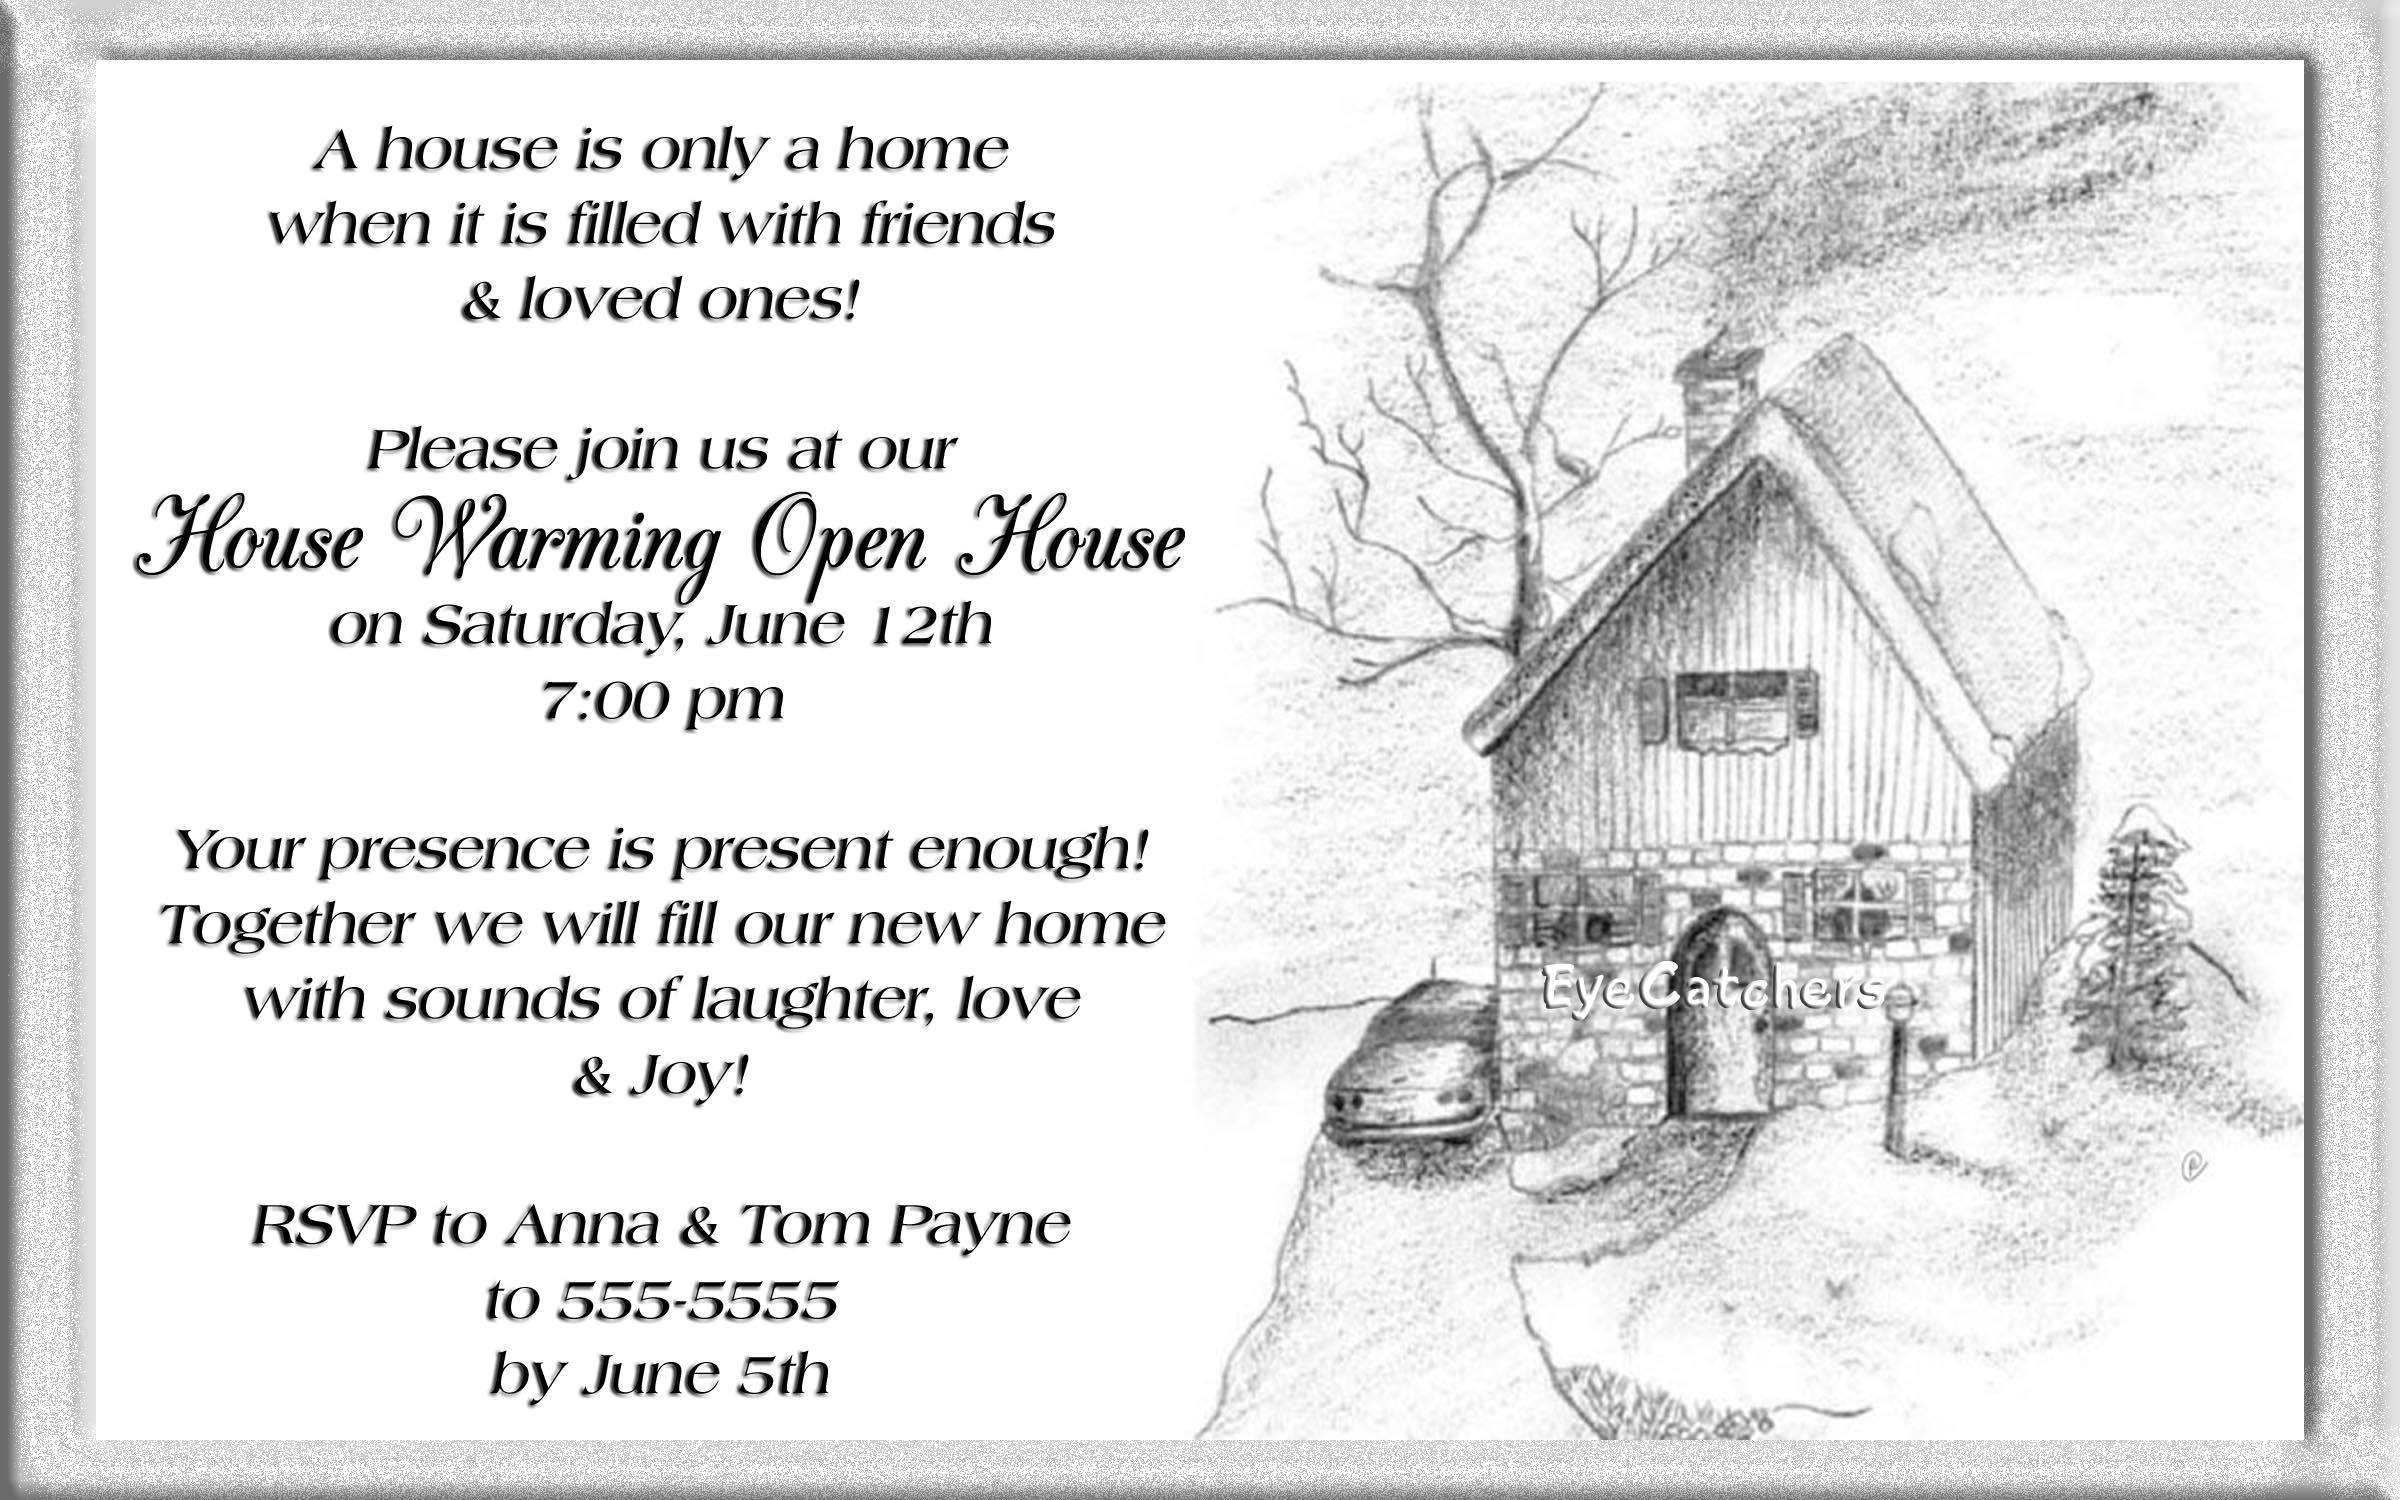 Christmas open house invitations wording if purchasing multiple christmas open house invitations wording if purchasing multiple items please wait for a revised invoice stopboris Choice Image